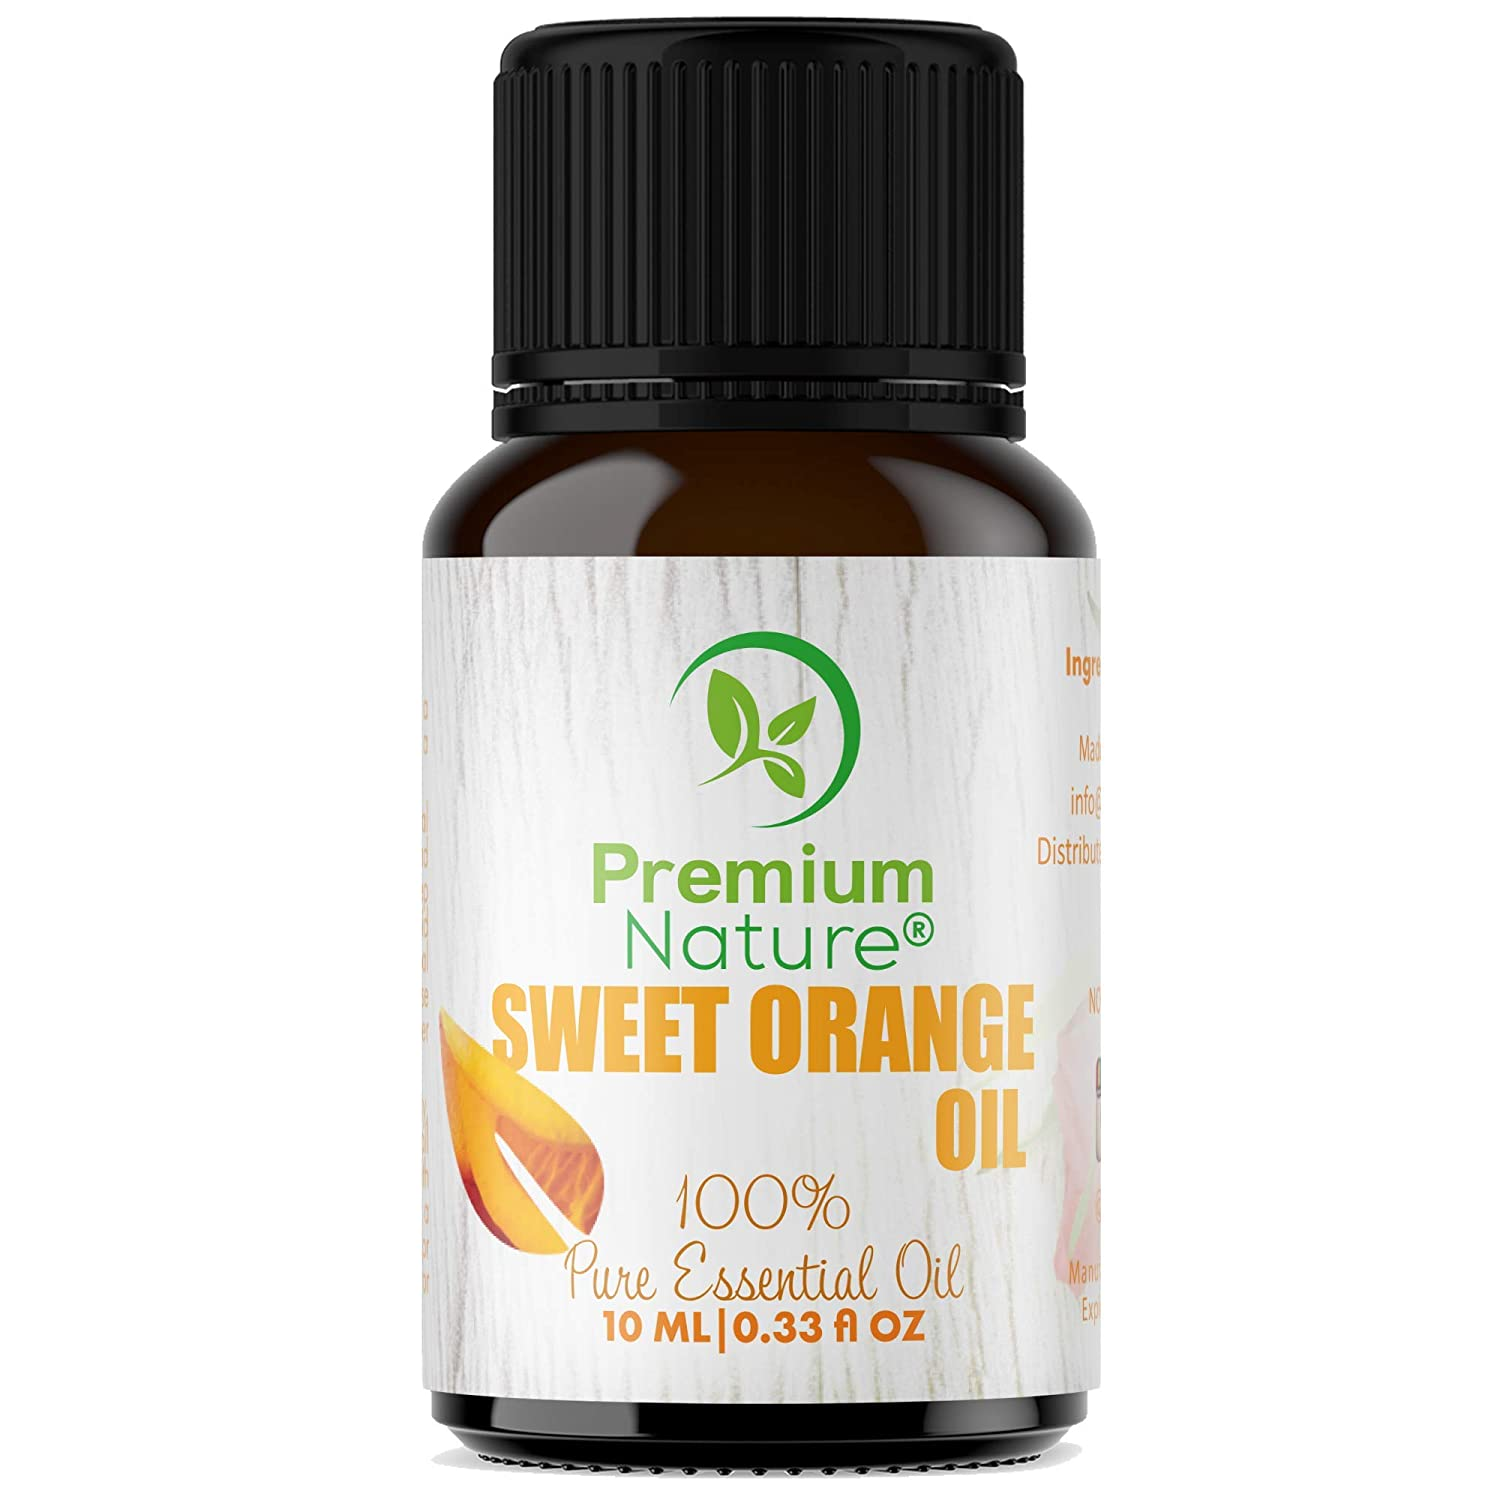 Organic Aromatherapy Sweet Orange Essential Oil - 100% Pure Essential Oil for Hair, Skin and Diffuser Best Therapeutic Grade Essential Oil (10mL) (Sweet Orange Oil)